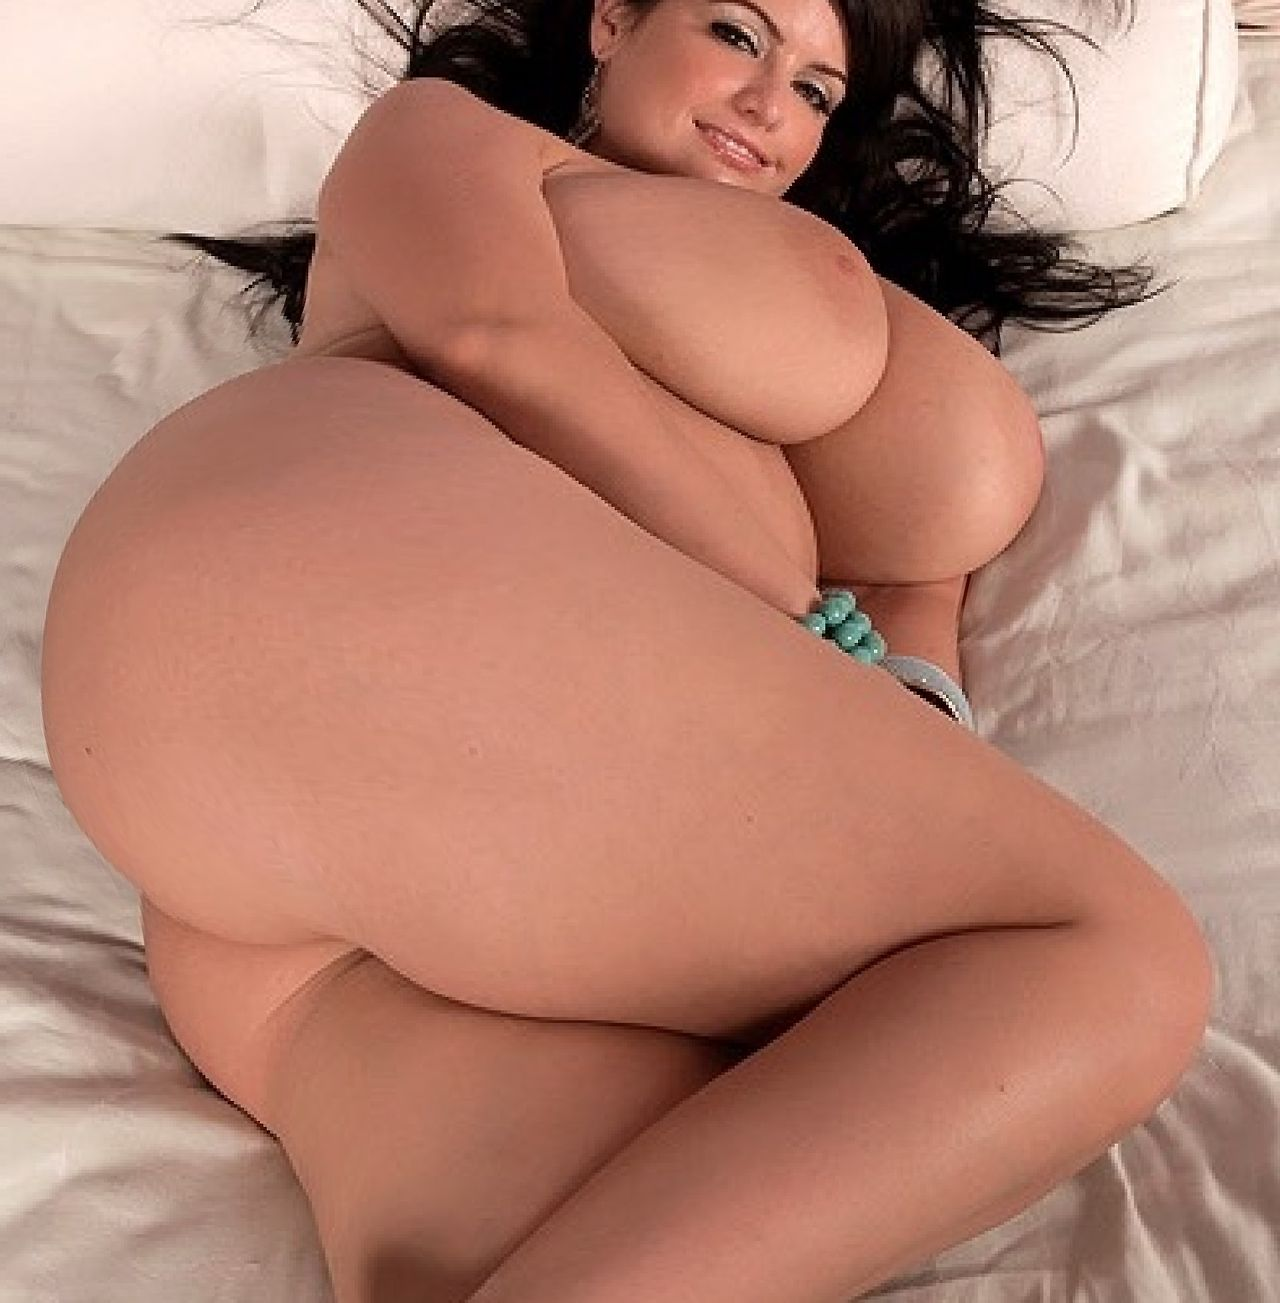 Recommend you Bbw wife sexy pic